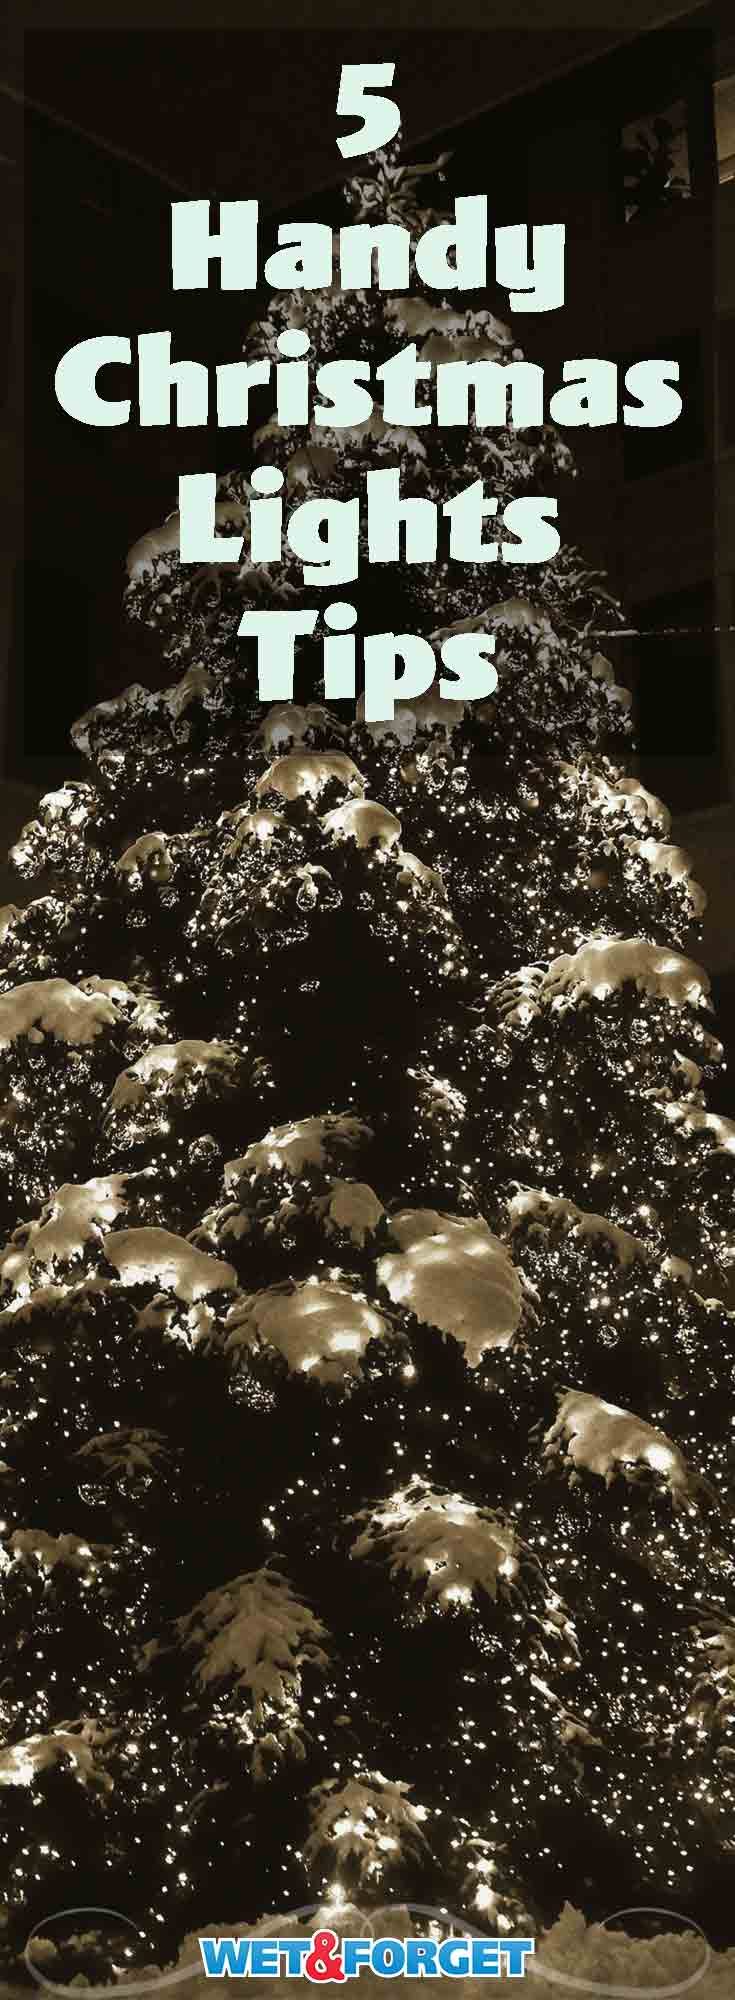 Hanging and storing Christmas lights can get complicated quickly. Use these 5 tips to simplify organizing and decorating with Christmas lights.